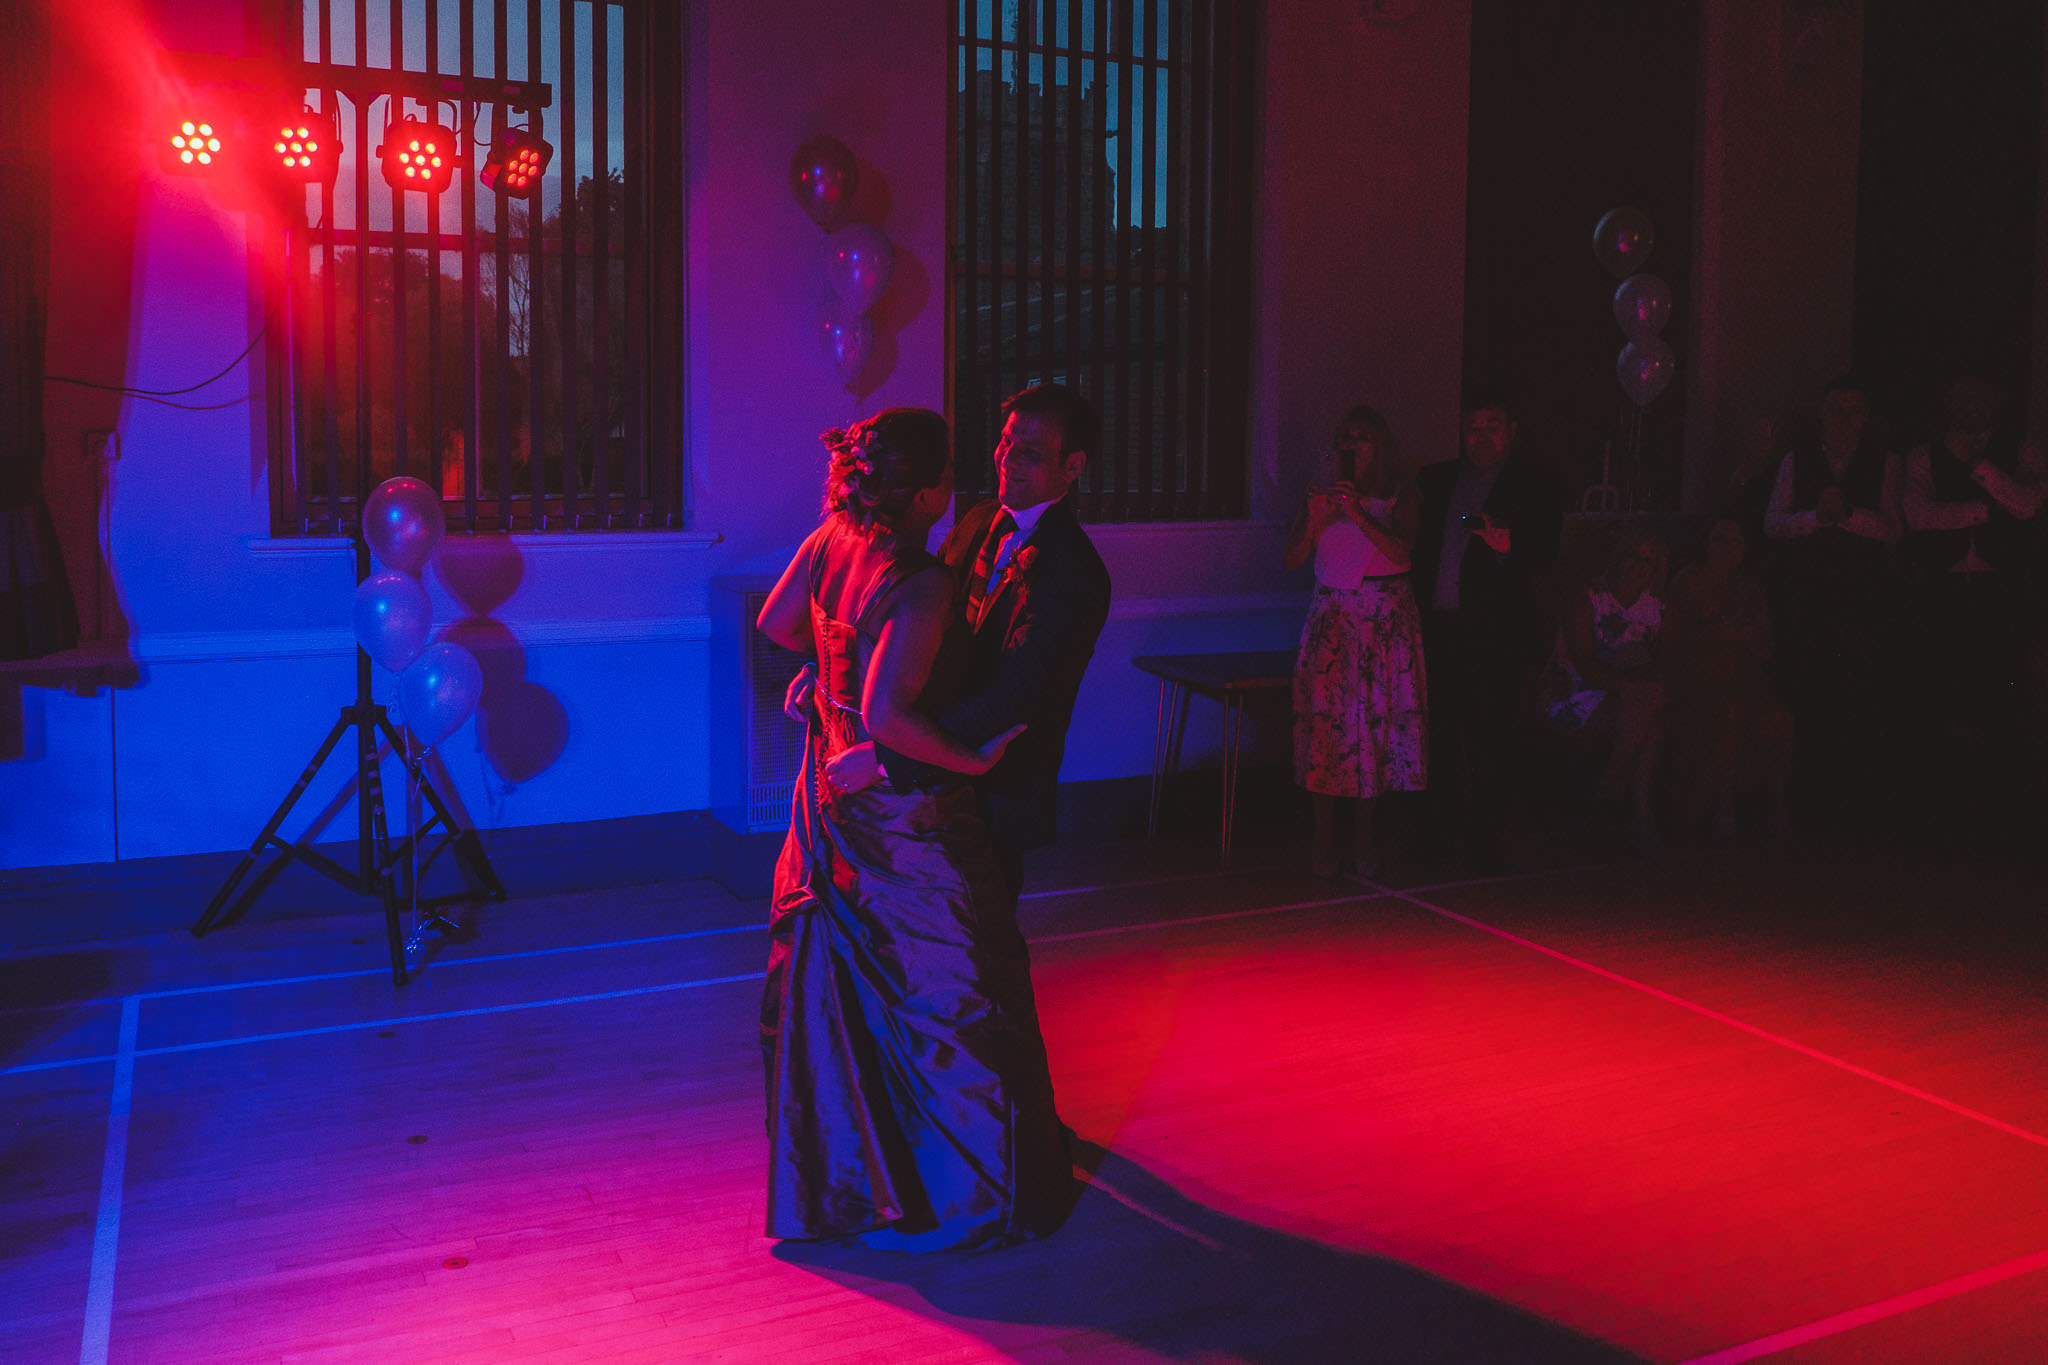 Bride and groom first dance in red and blue light